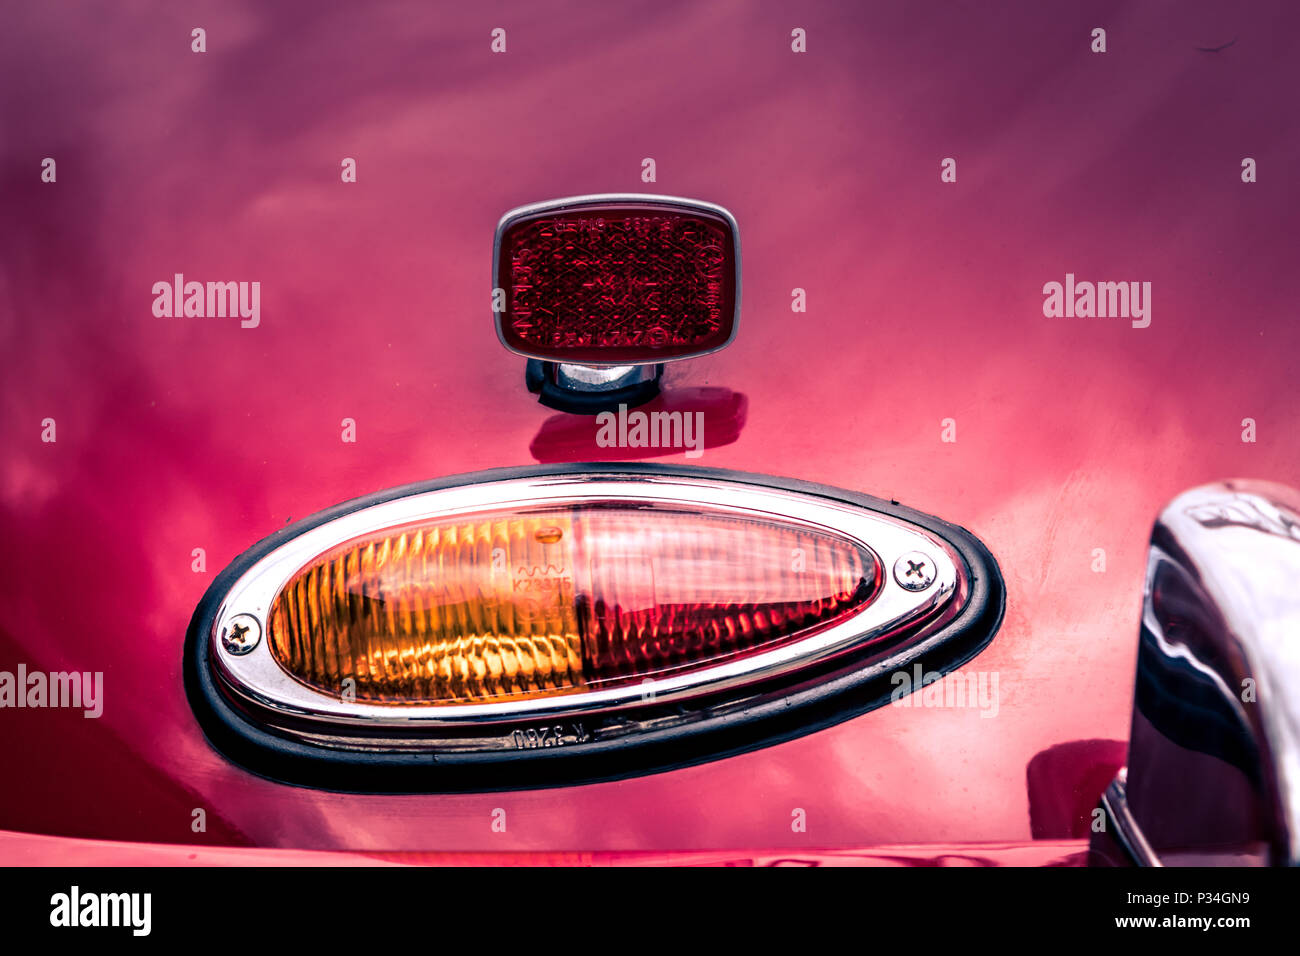 Close-up, detailed photo of the trunk and rear lamp of a classic oldtimer car. - Stock Image